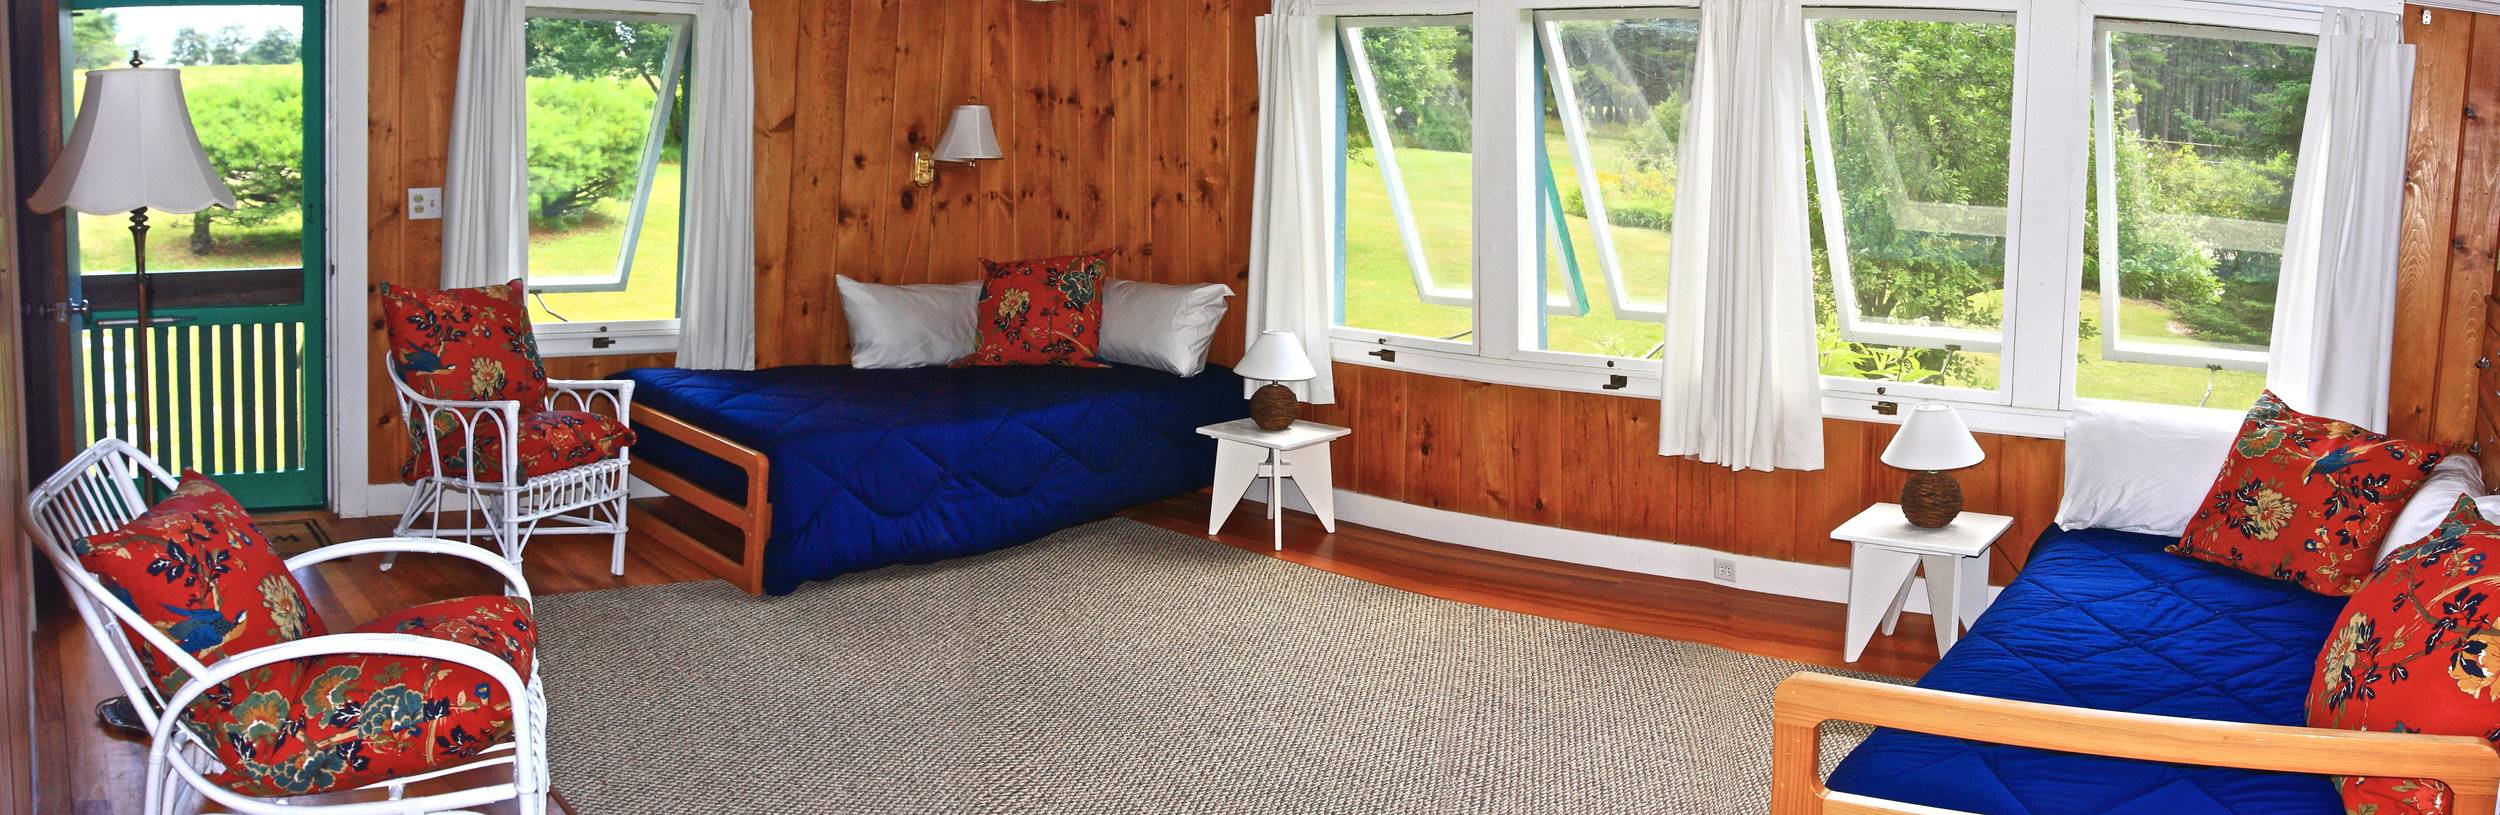 Southeast Bedroom, choose 1 king plus 1 twin or 3 twin beds